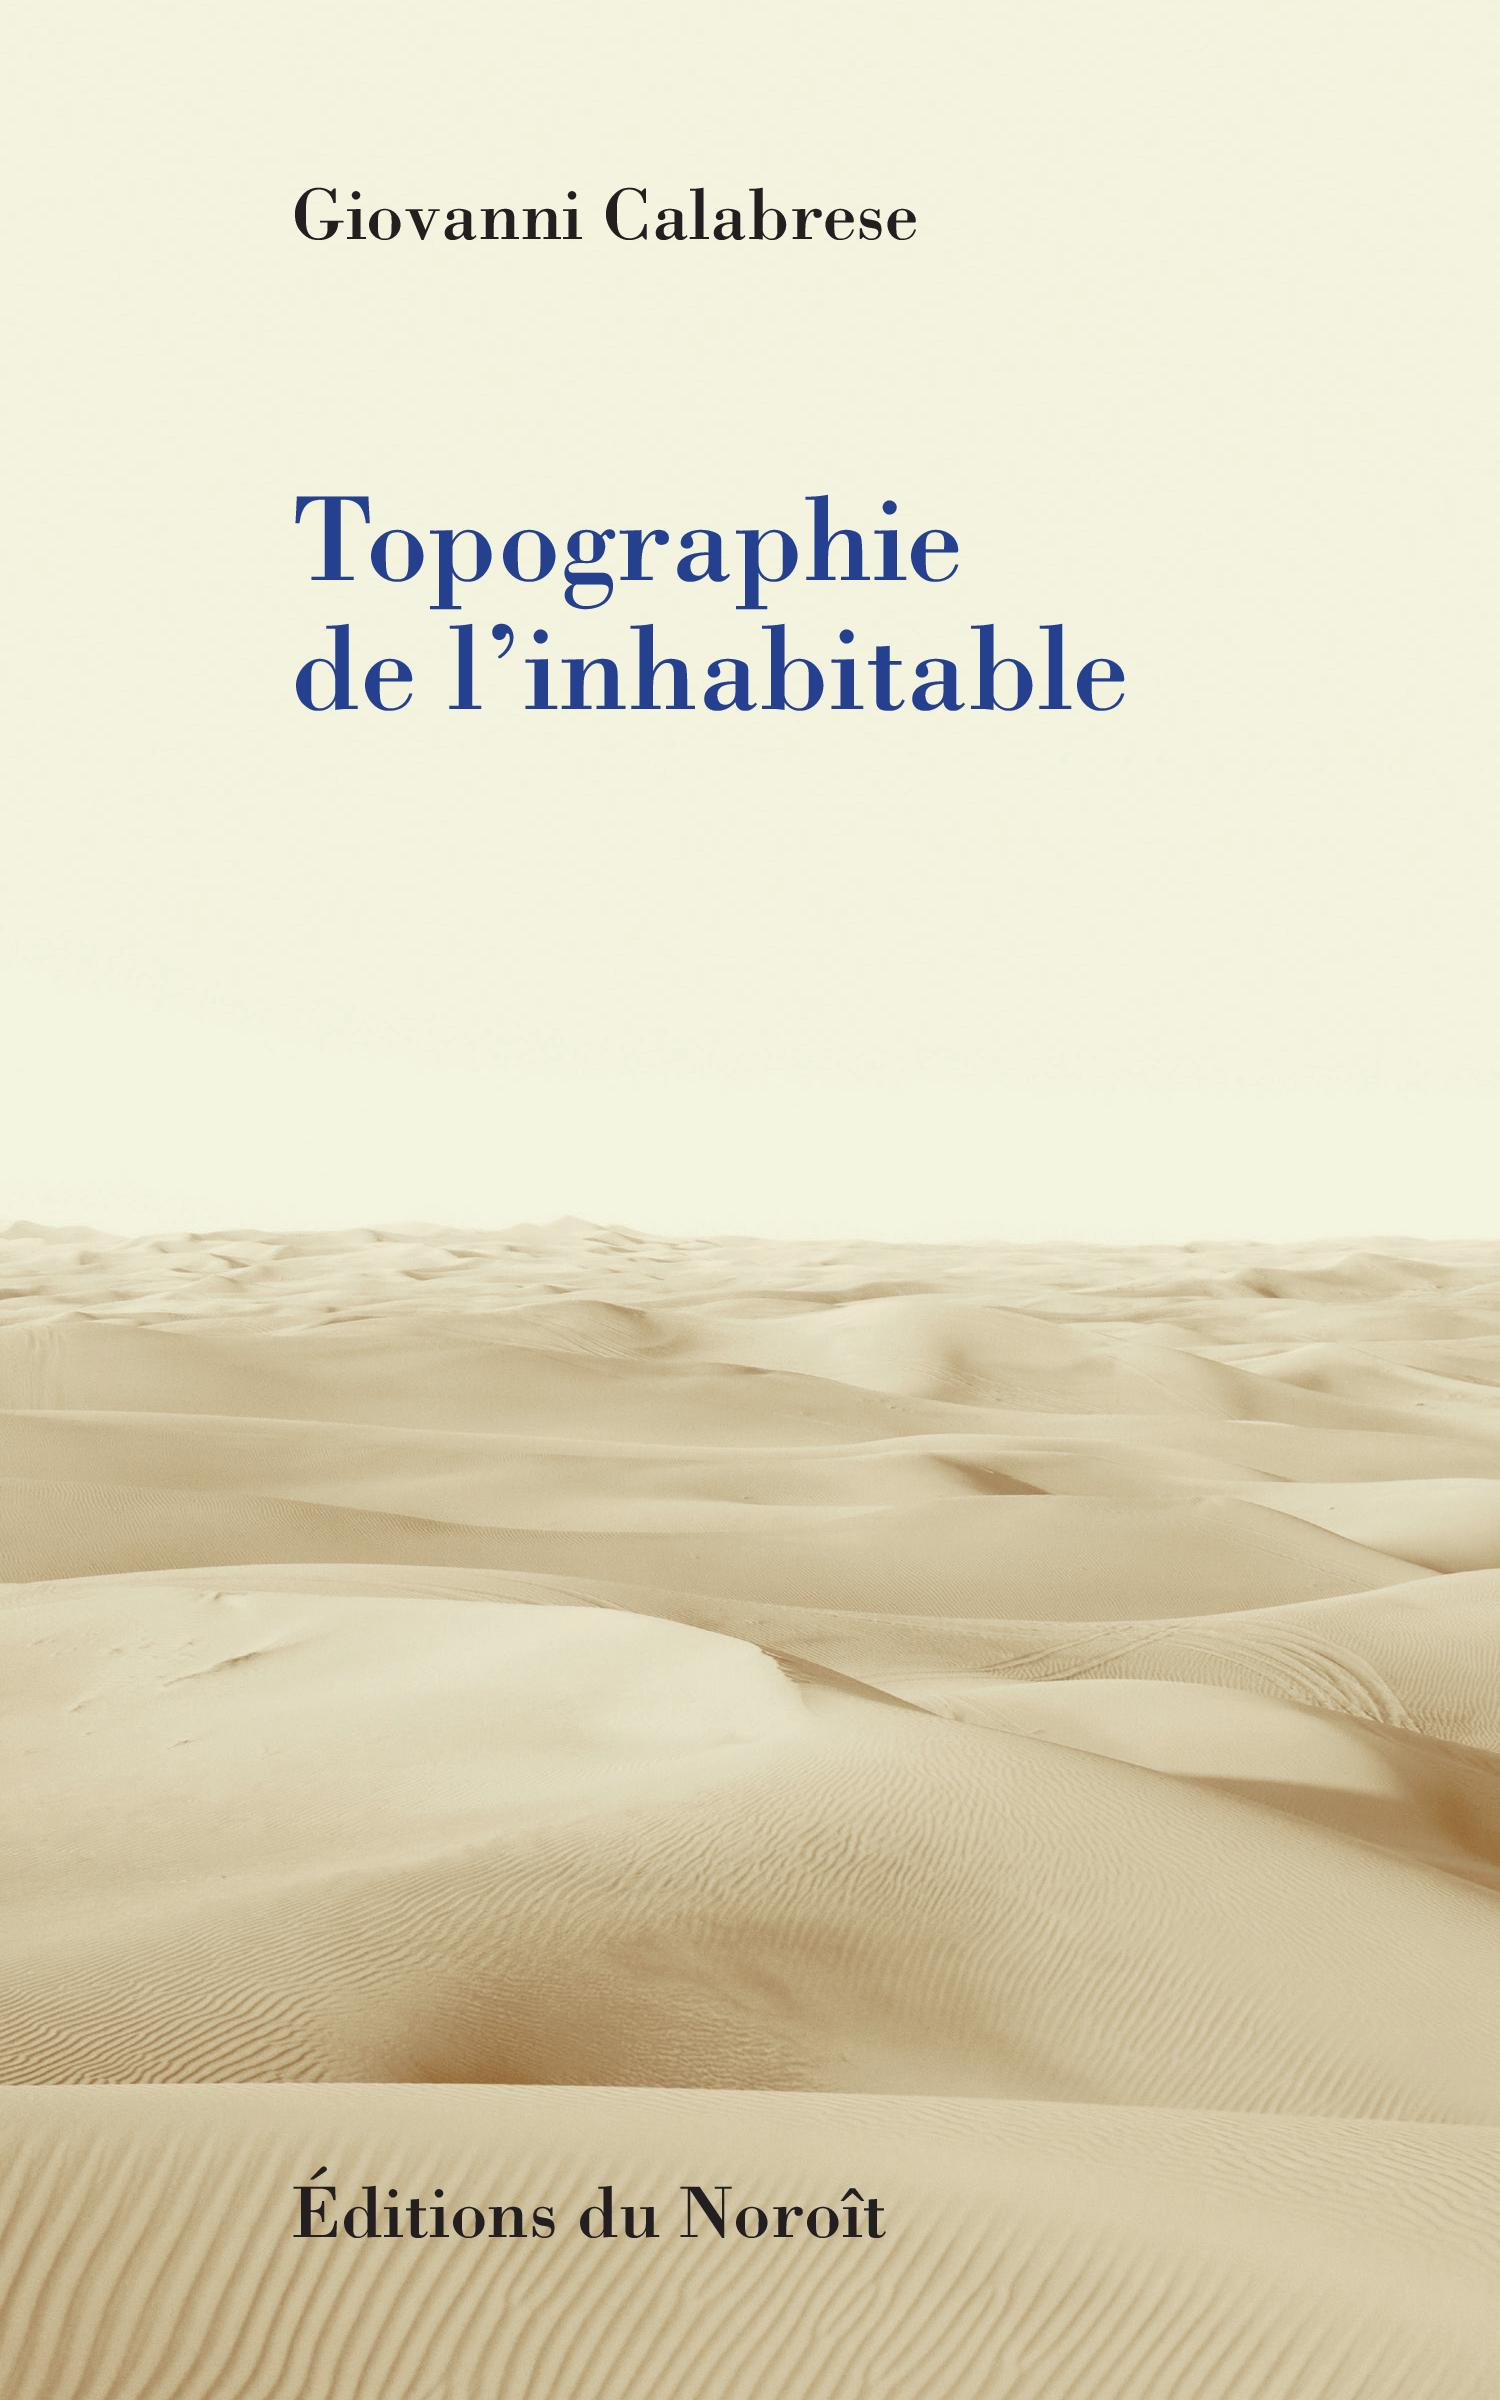 Topographie de l'inhabitable